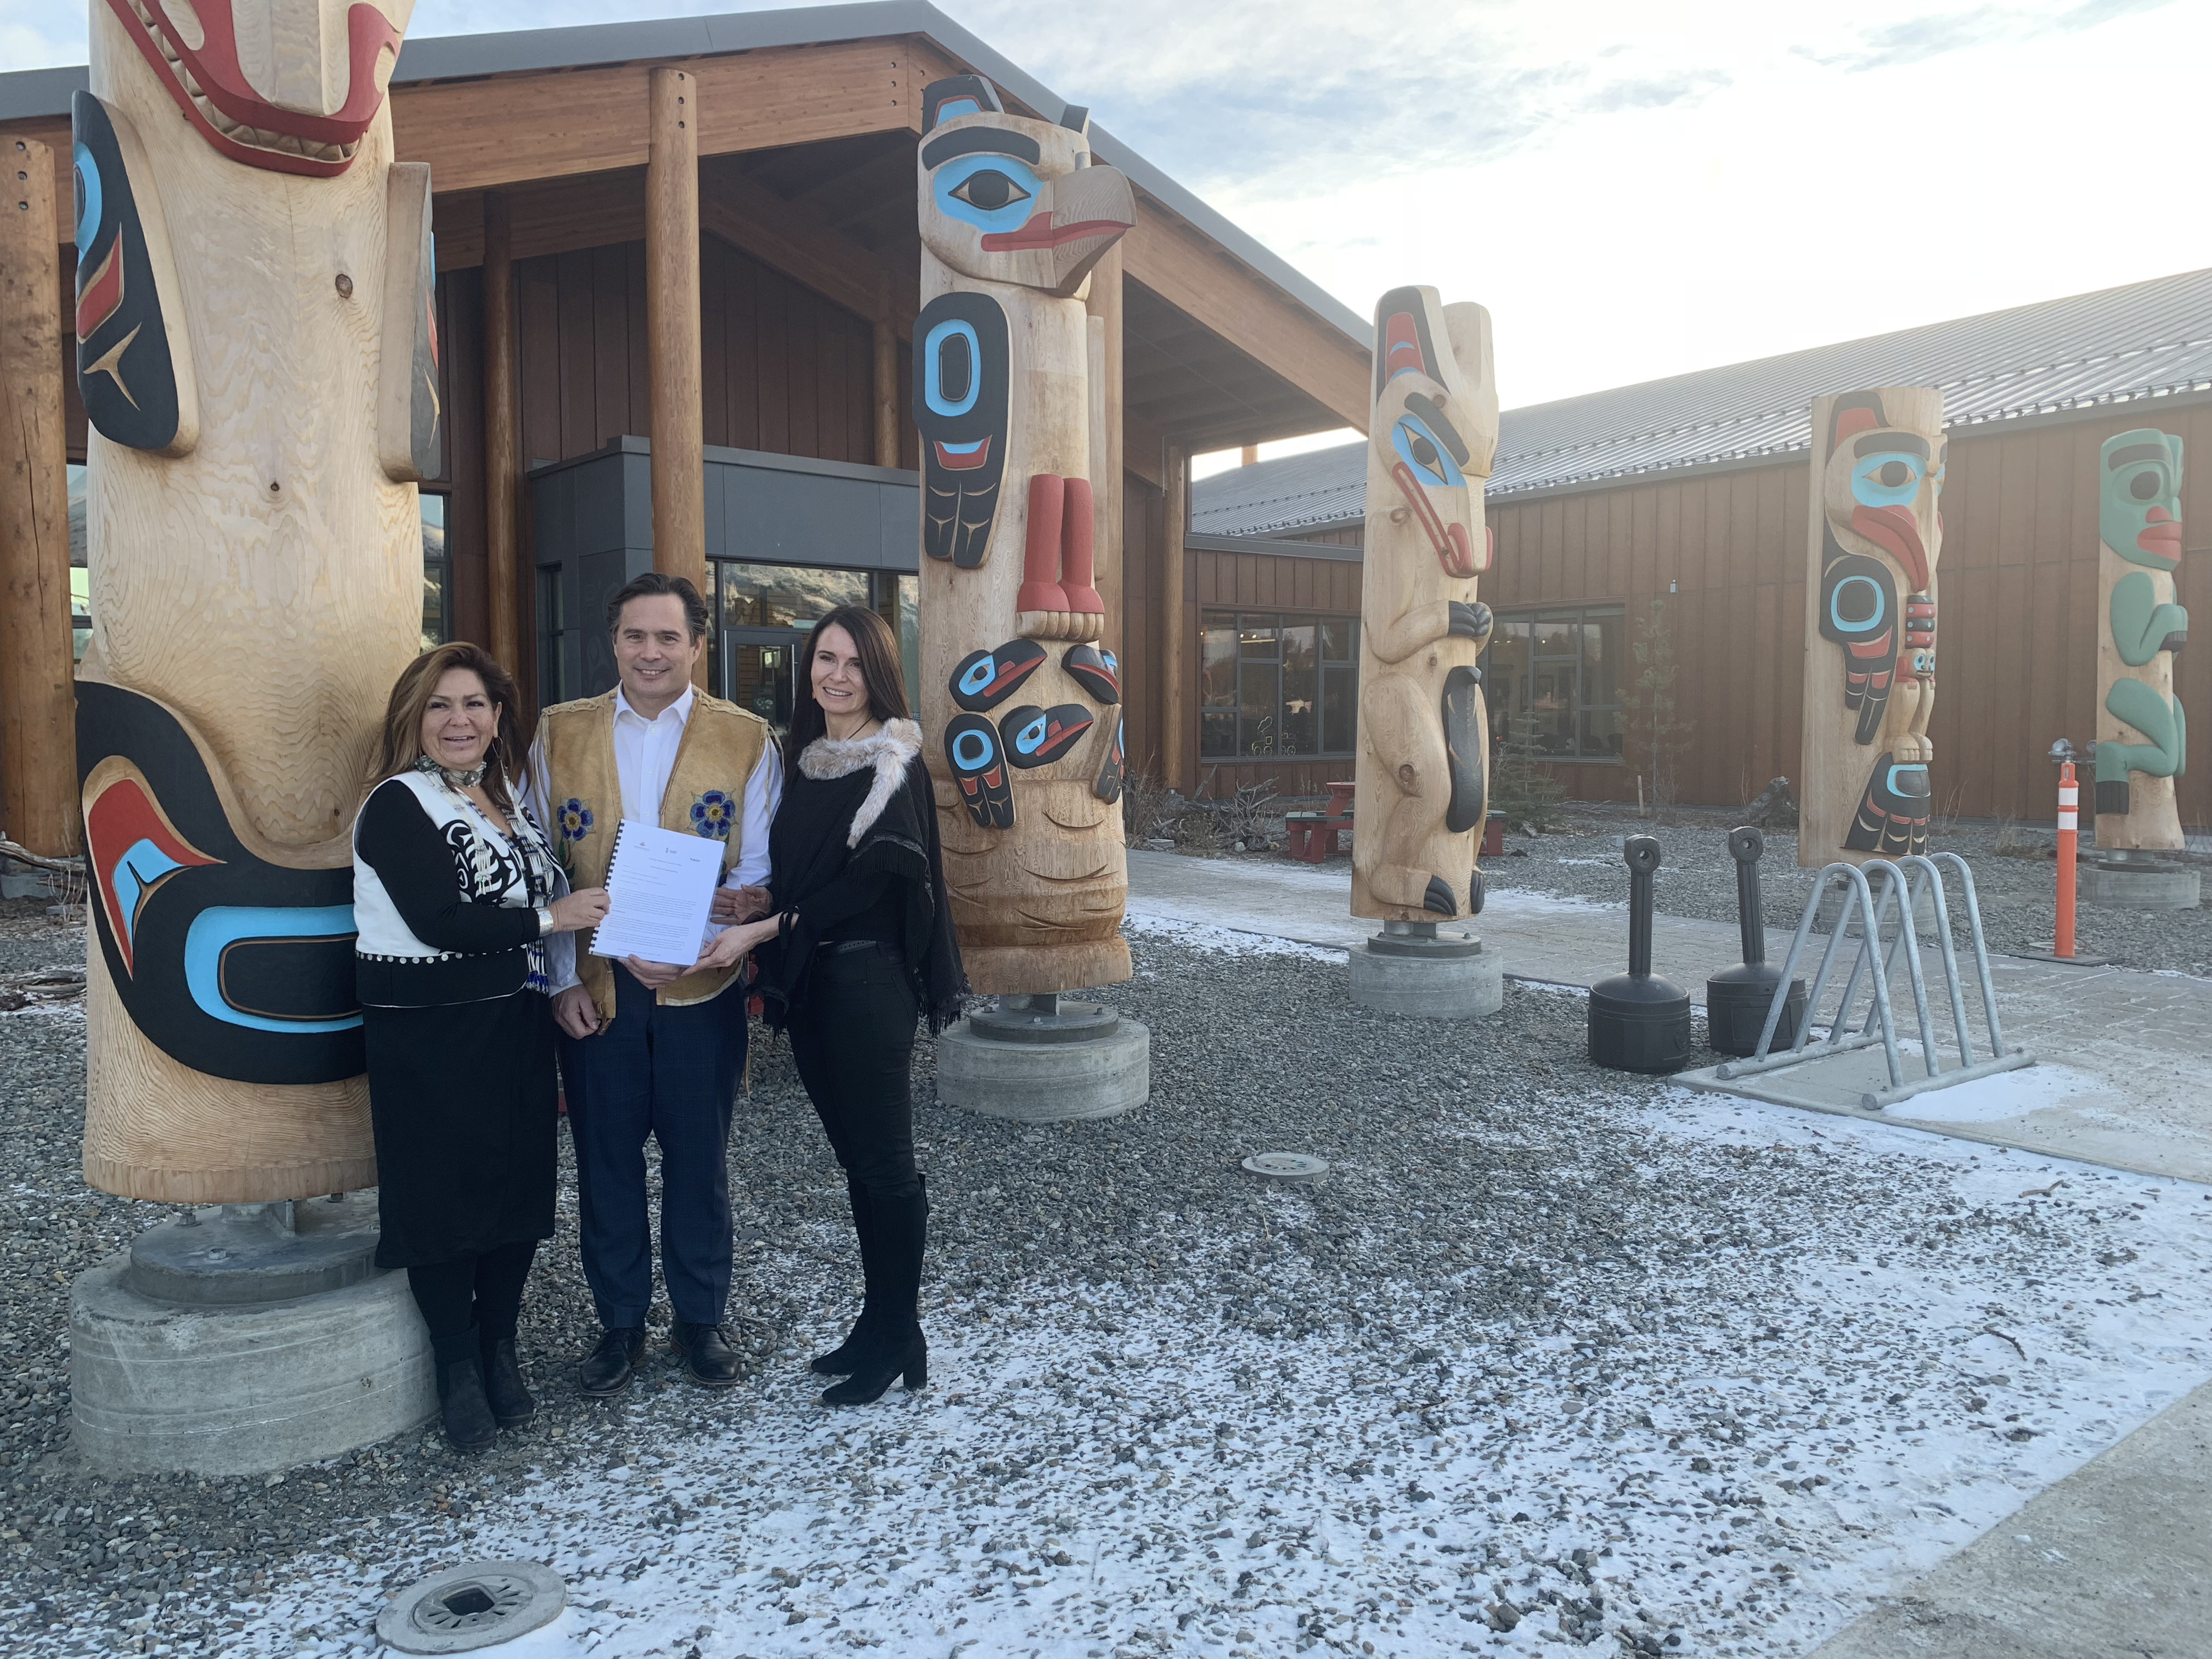 News Release: Memorandum of understanding signed to support Indigenous Tourism